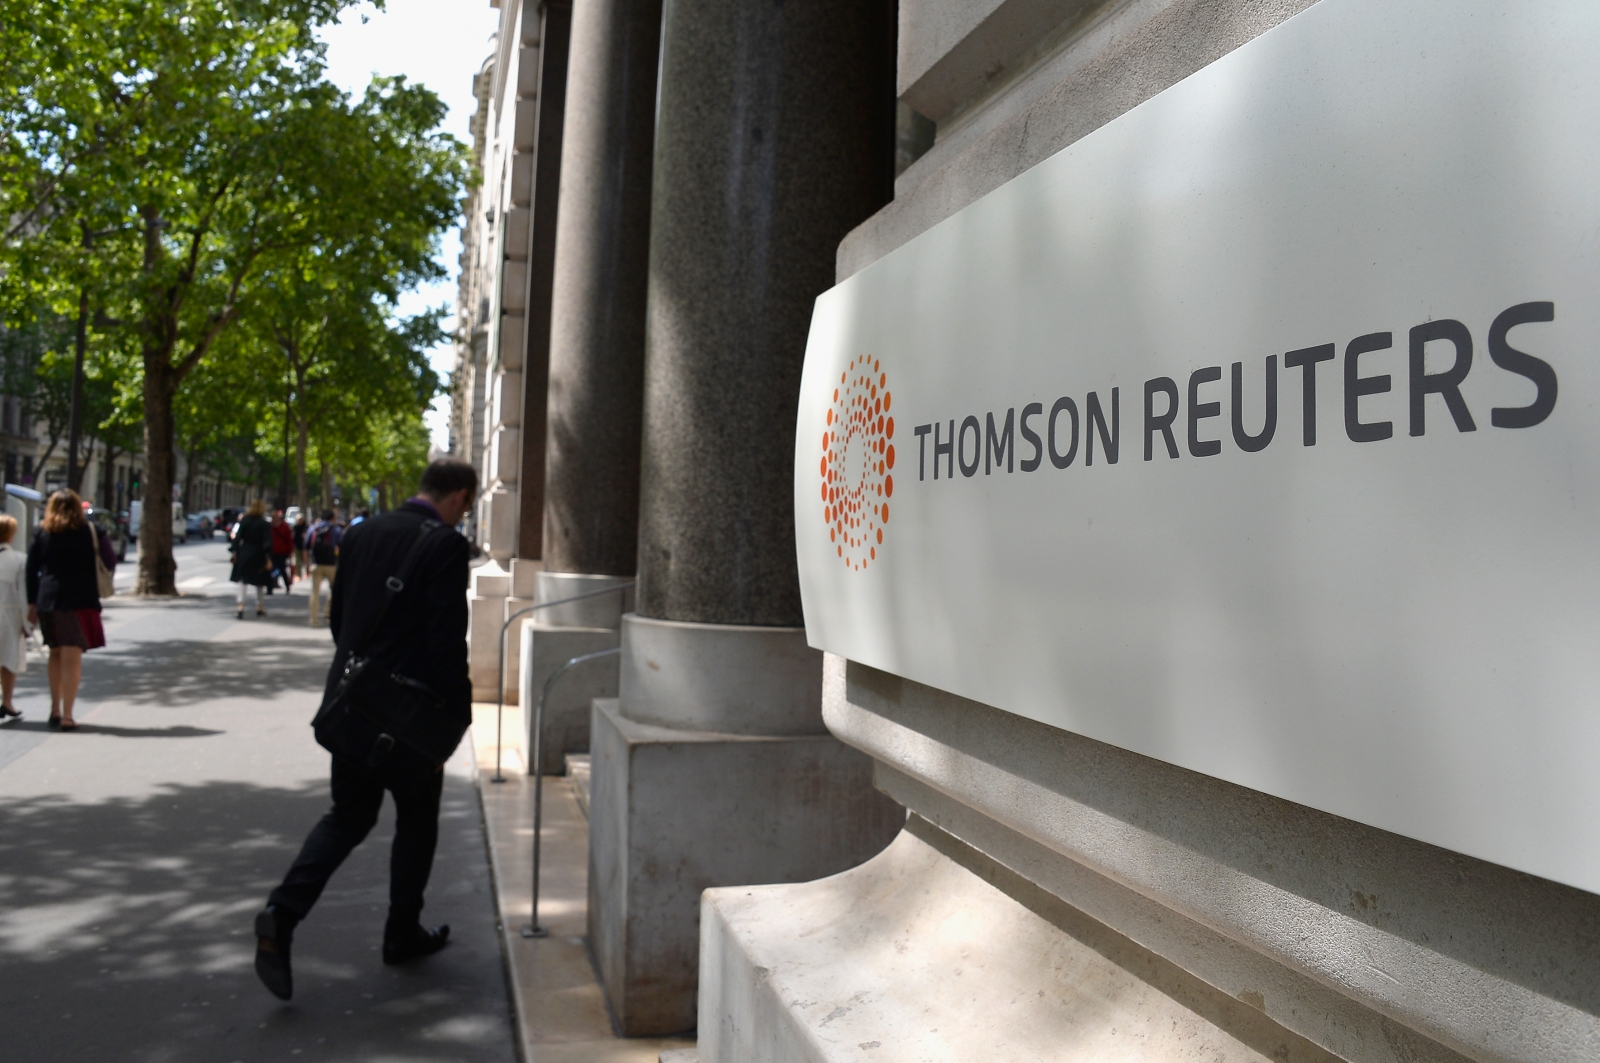 Thomson Reuters to cut 2,000 jobs